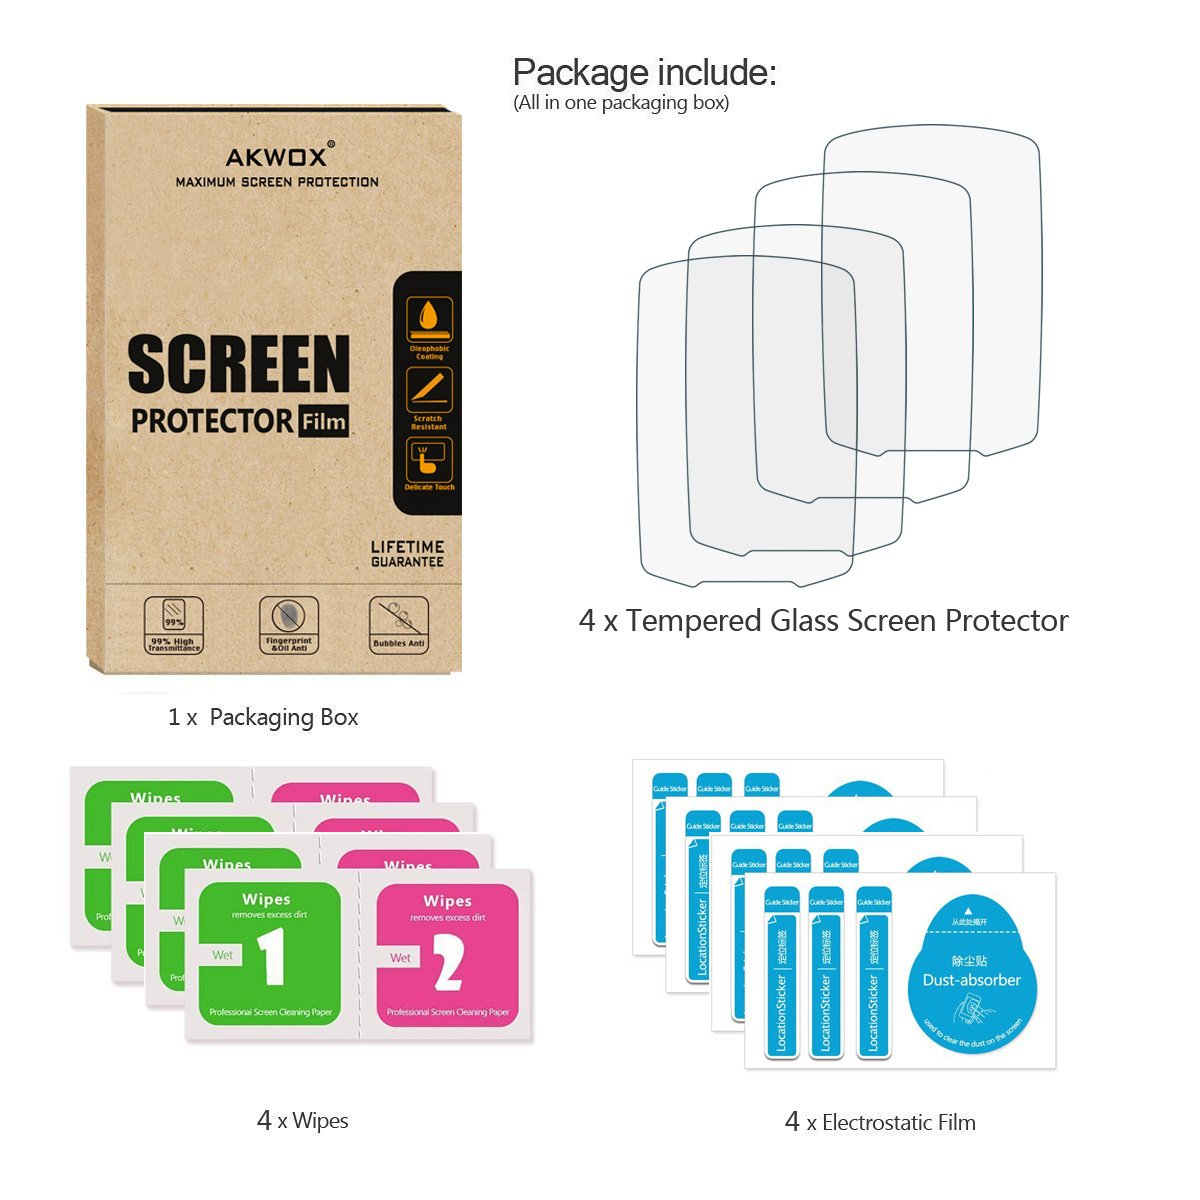 HD Film Skin BoxWave Shields from Scratches for Garmin GPSMAP 7616xsv 2-Pack ClearTouch Crystal Garmin GPSMAP 7616xsv Screen Protector